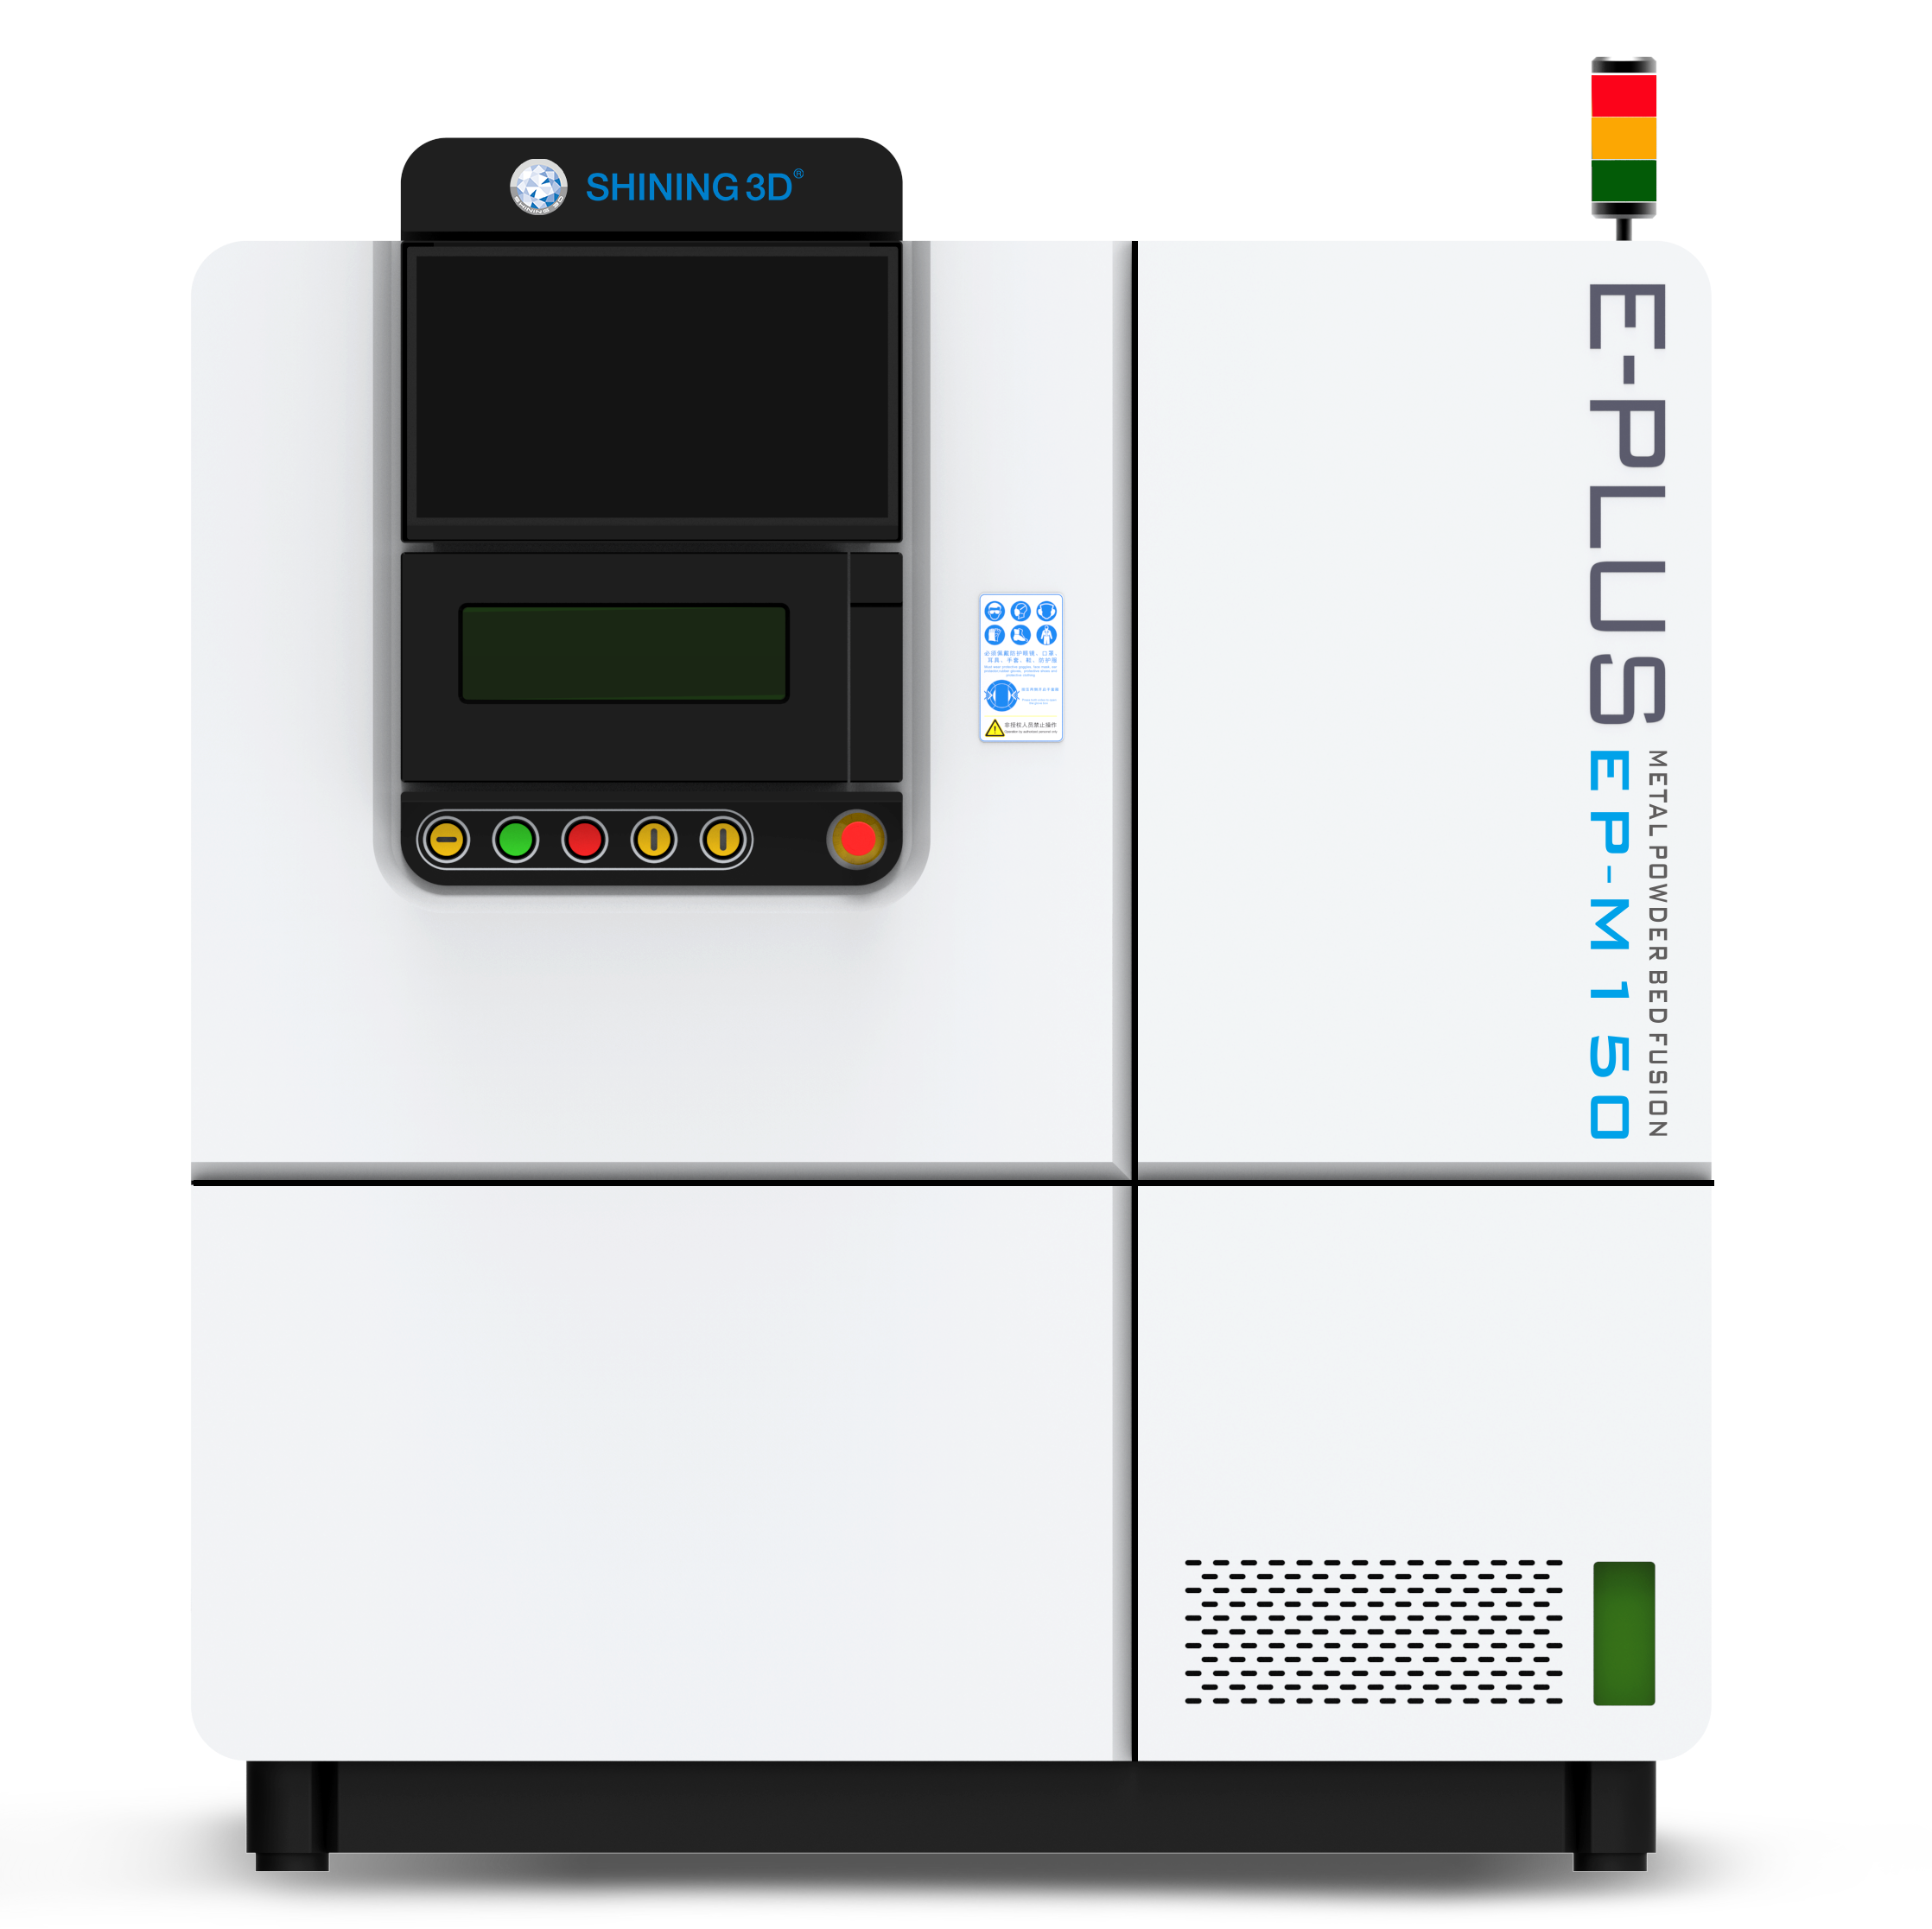 The EP-M150 3D printer from Shining 3D. Image via Shining 3D.